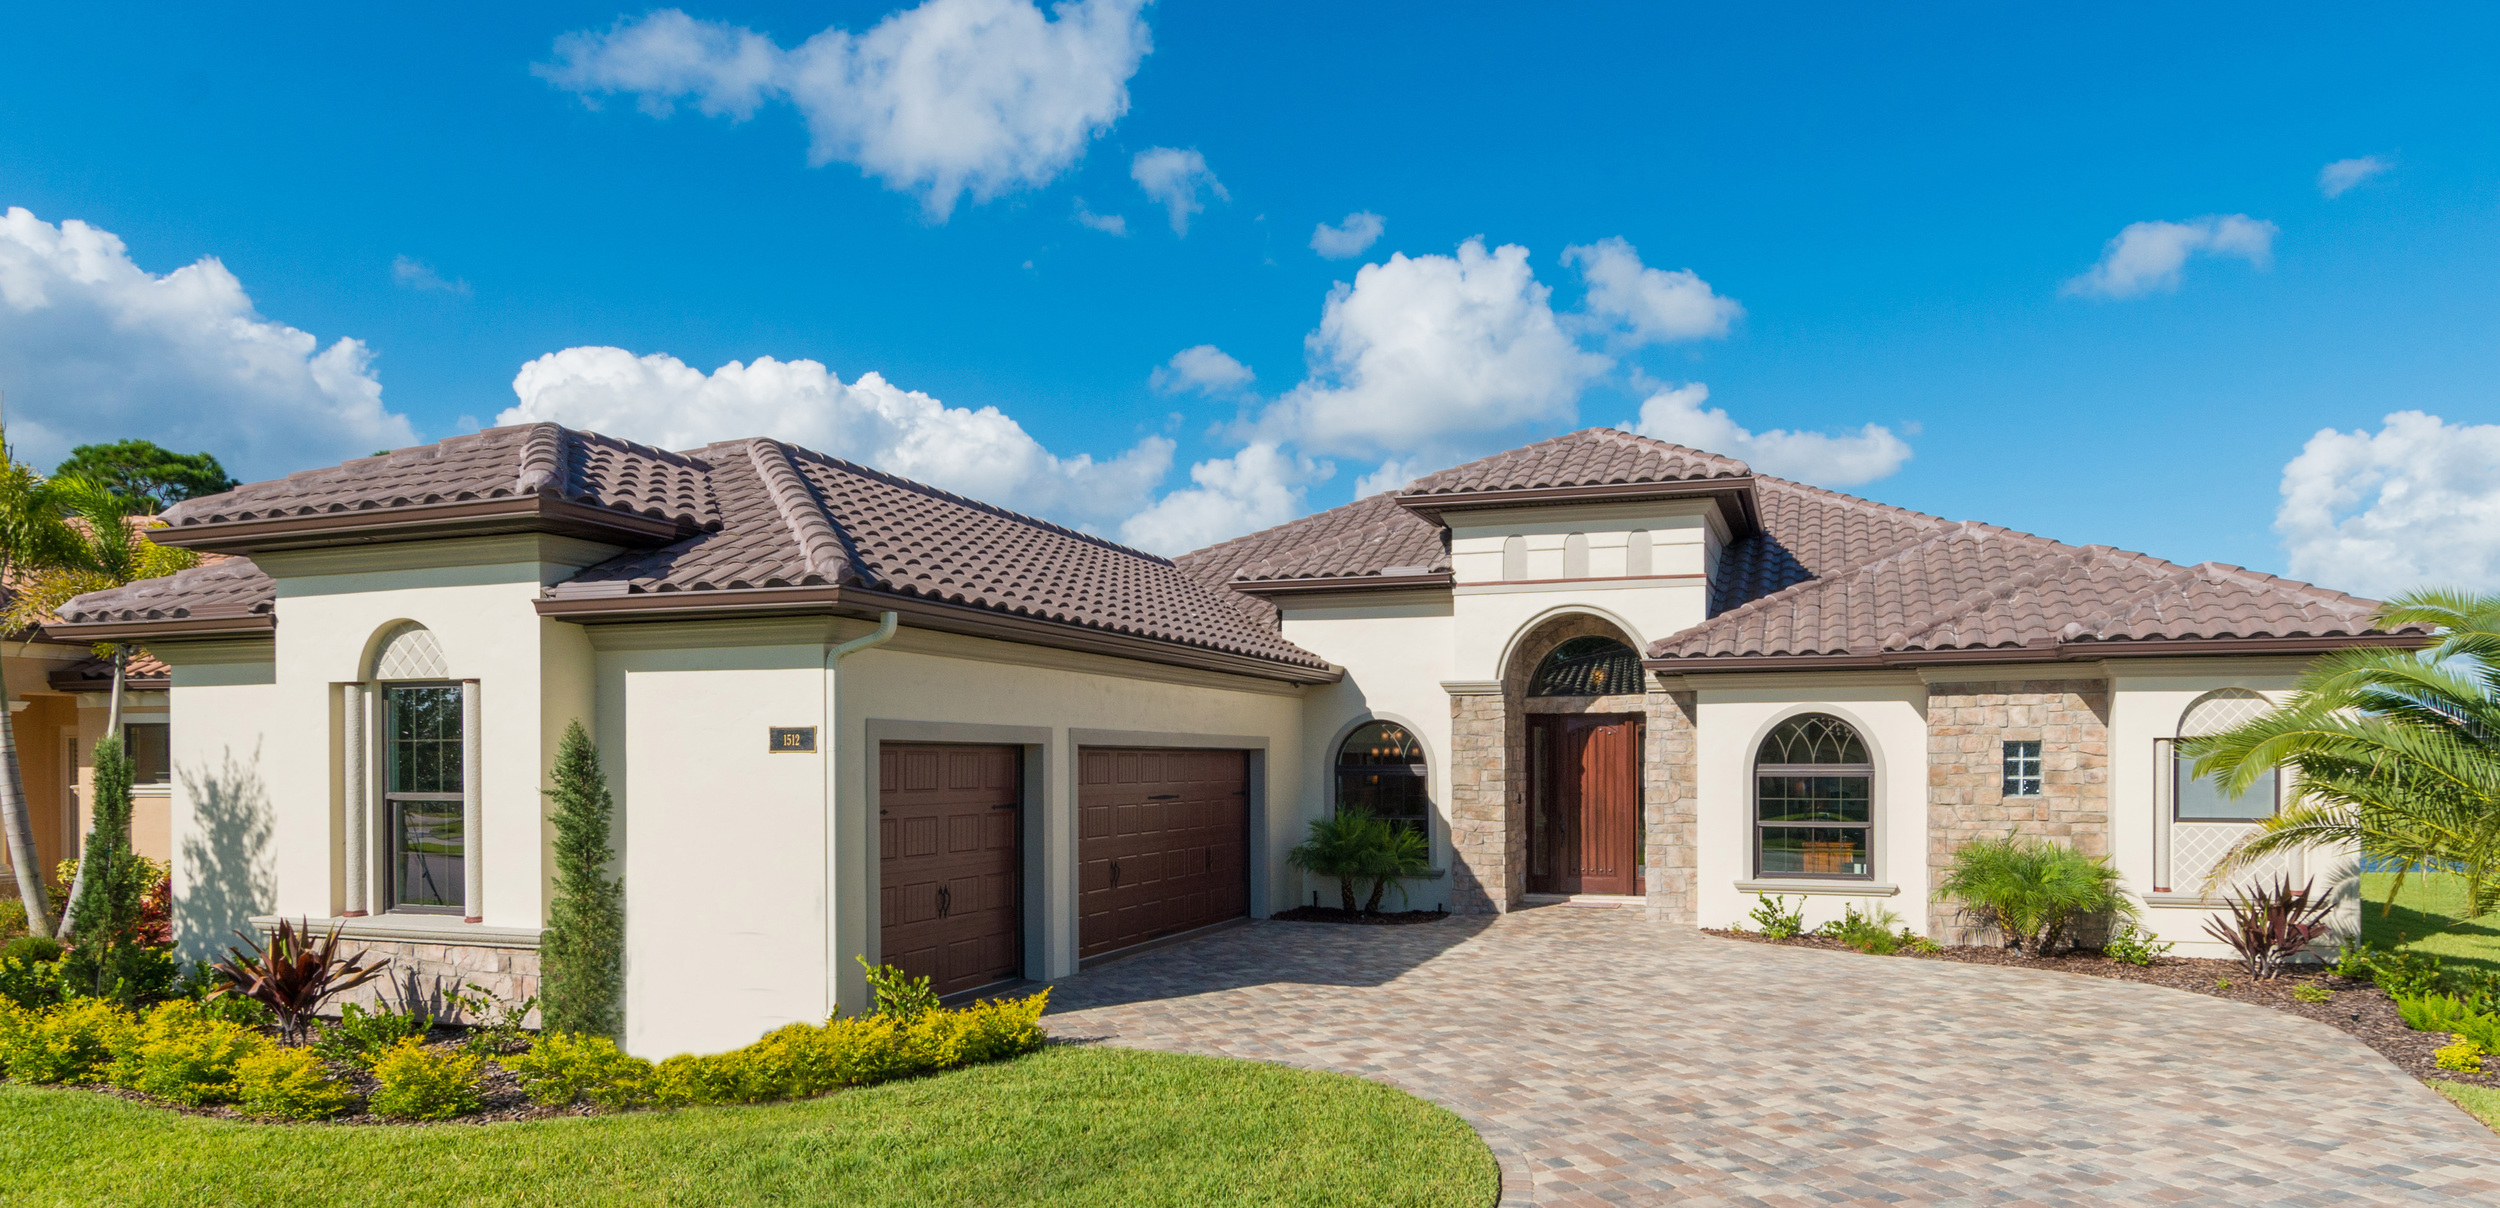 Click here for a virtual tour  of the luxurious Villa Verde in Tralee Bay Estates! 4 Bedroom 3 Bath 3 Car Garage